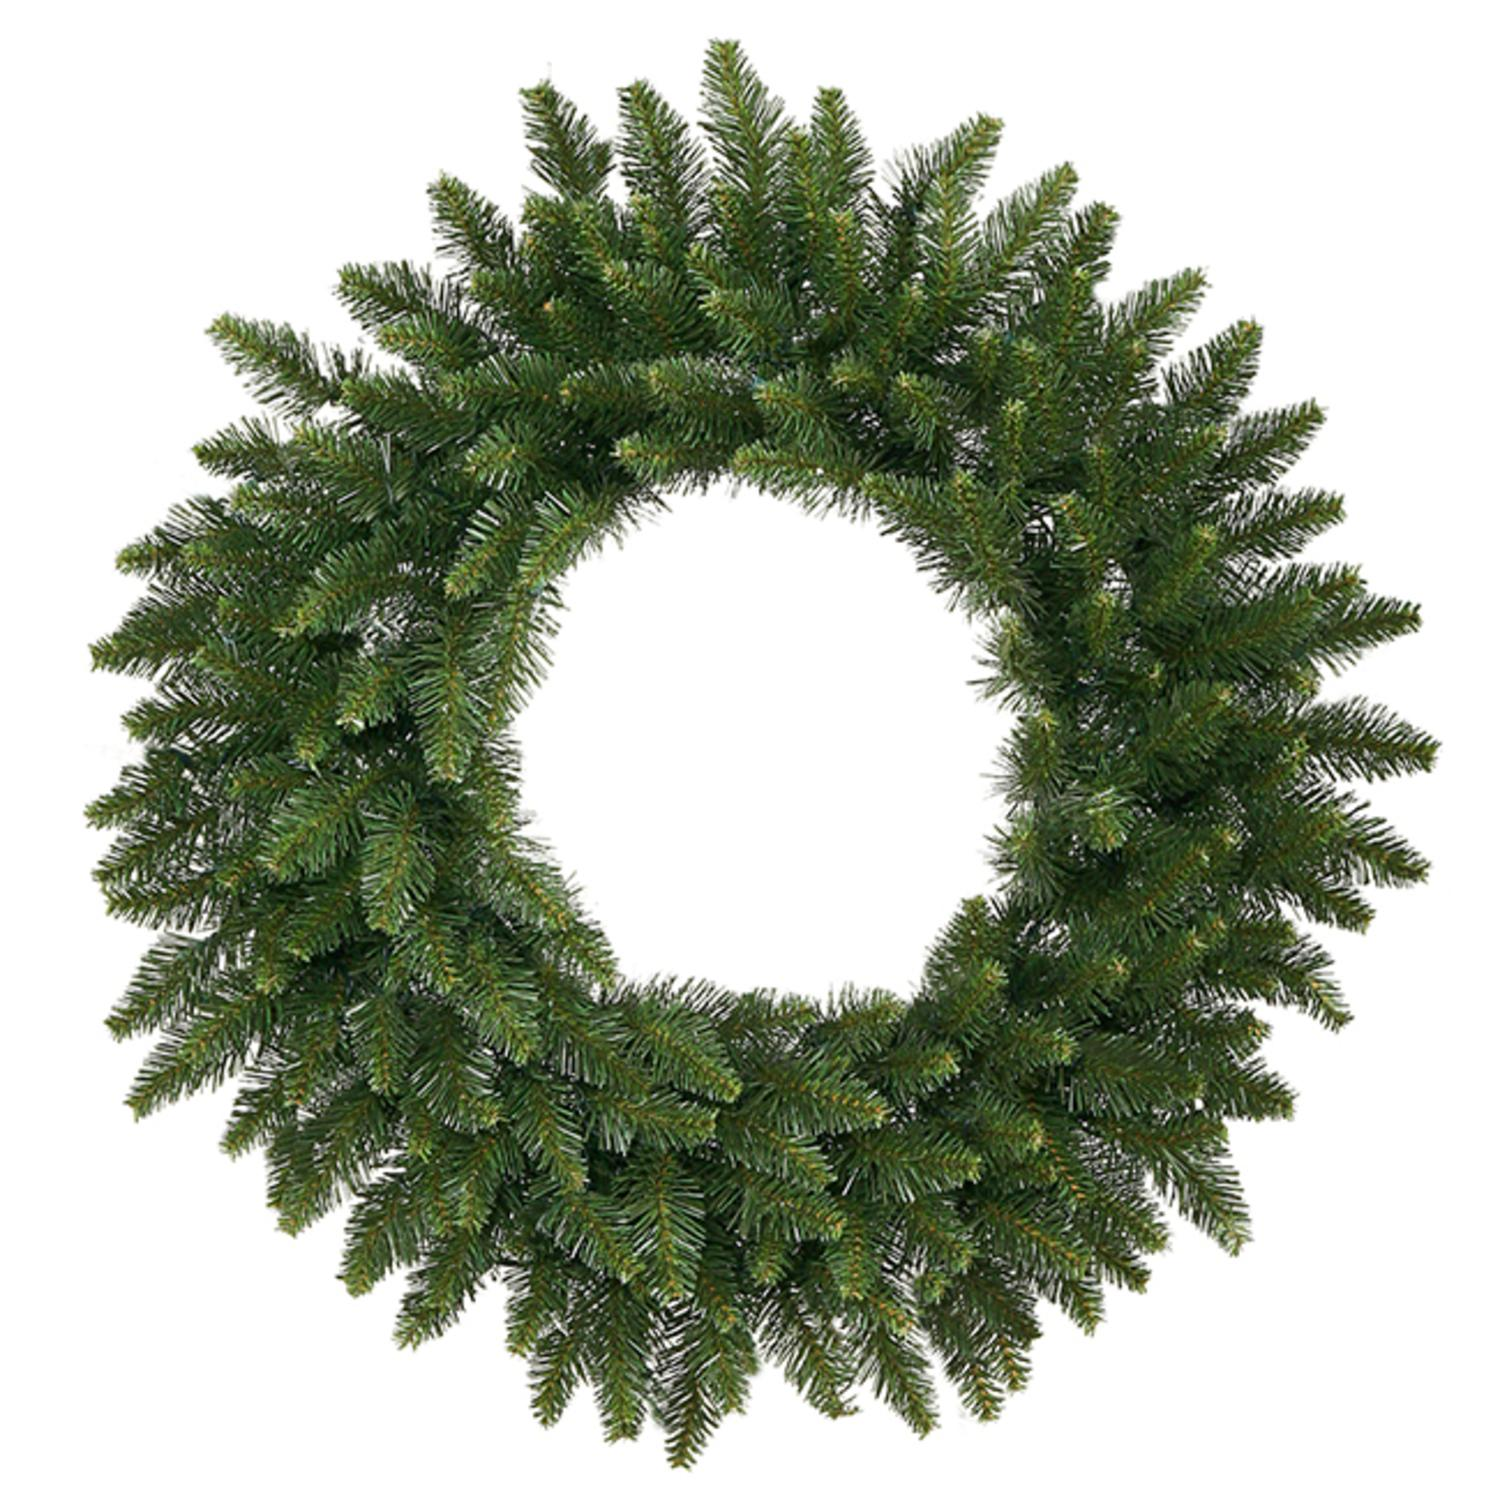 12' Camdon Fir Commercial Size Artificial Christmas Wreath - Unlit